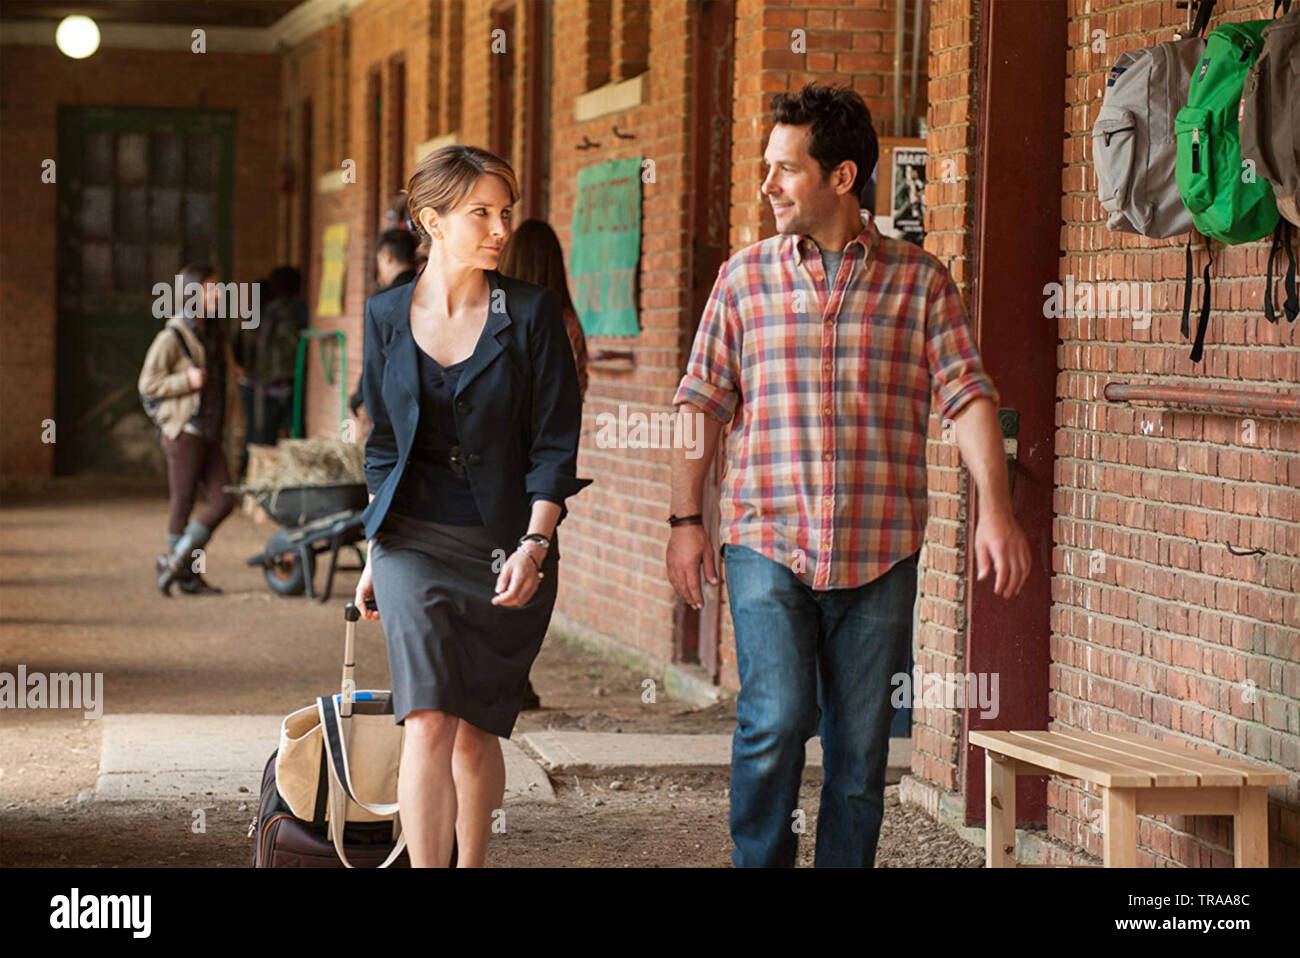 ADMISSION 2013 Focus Features film with Tina Fey and Paul Rudd - Stock Image